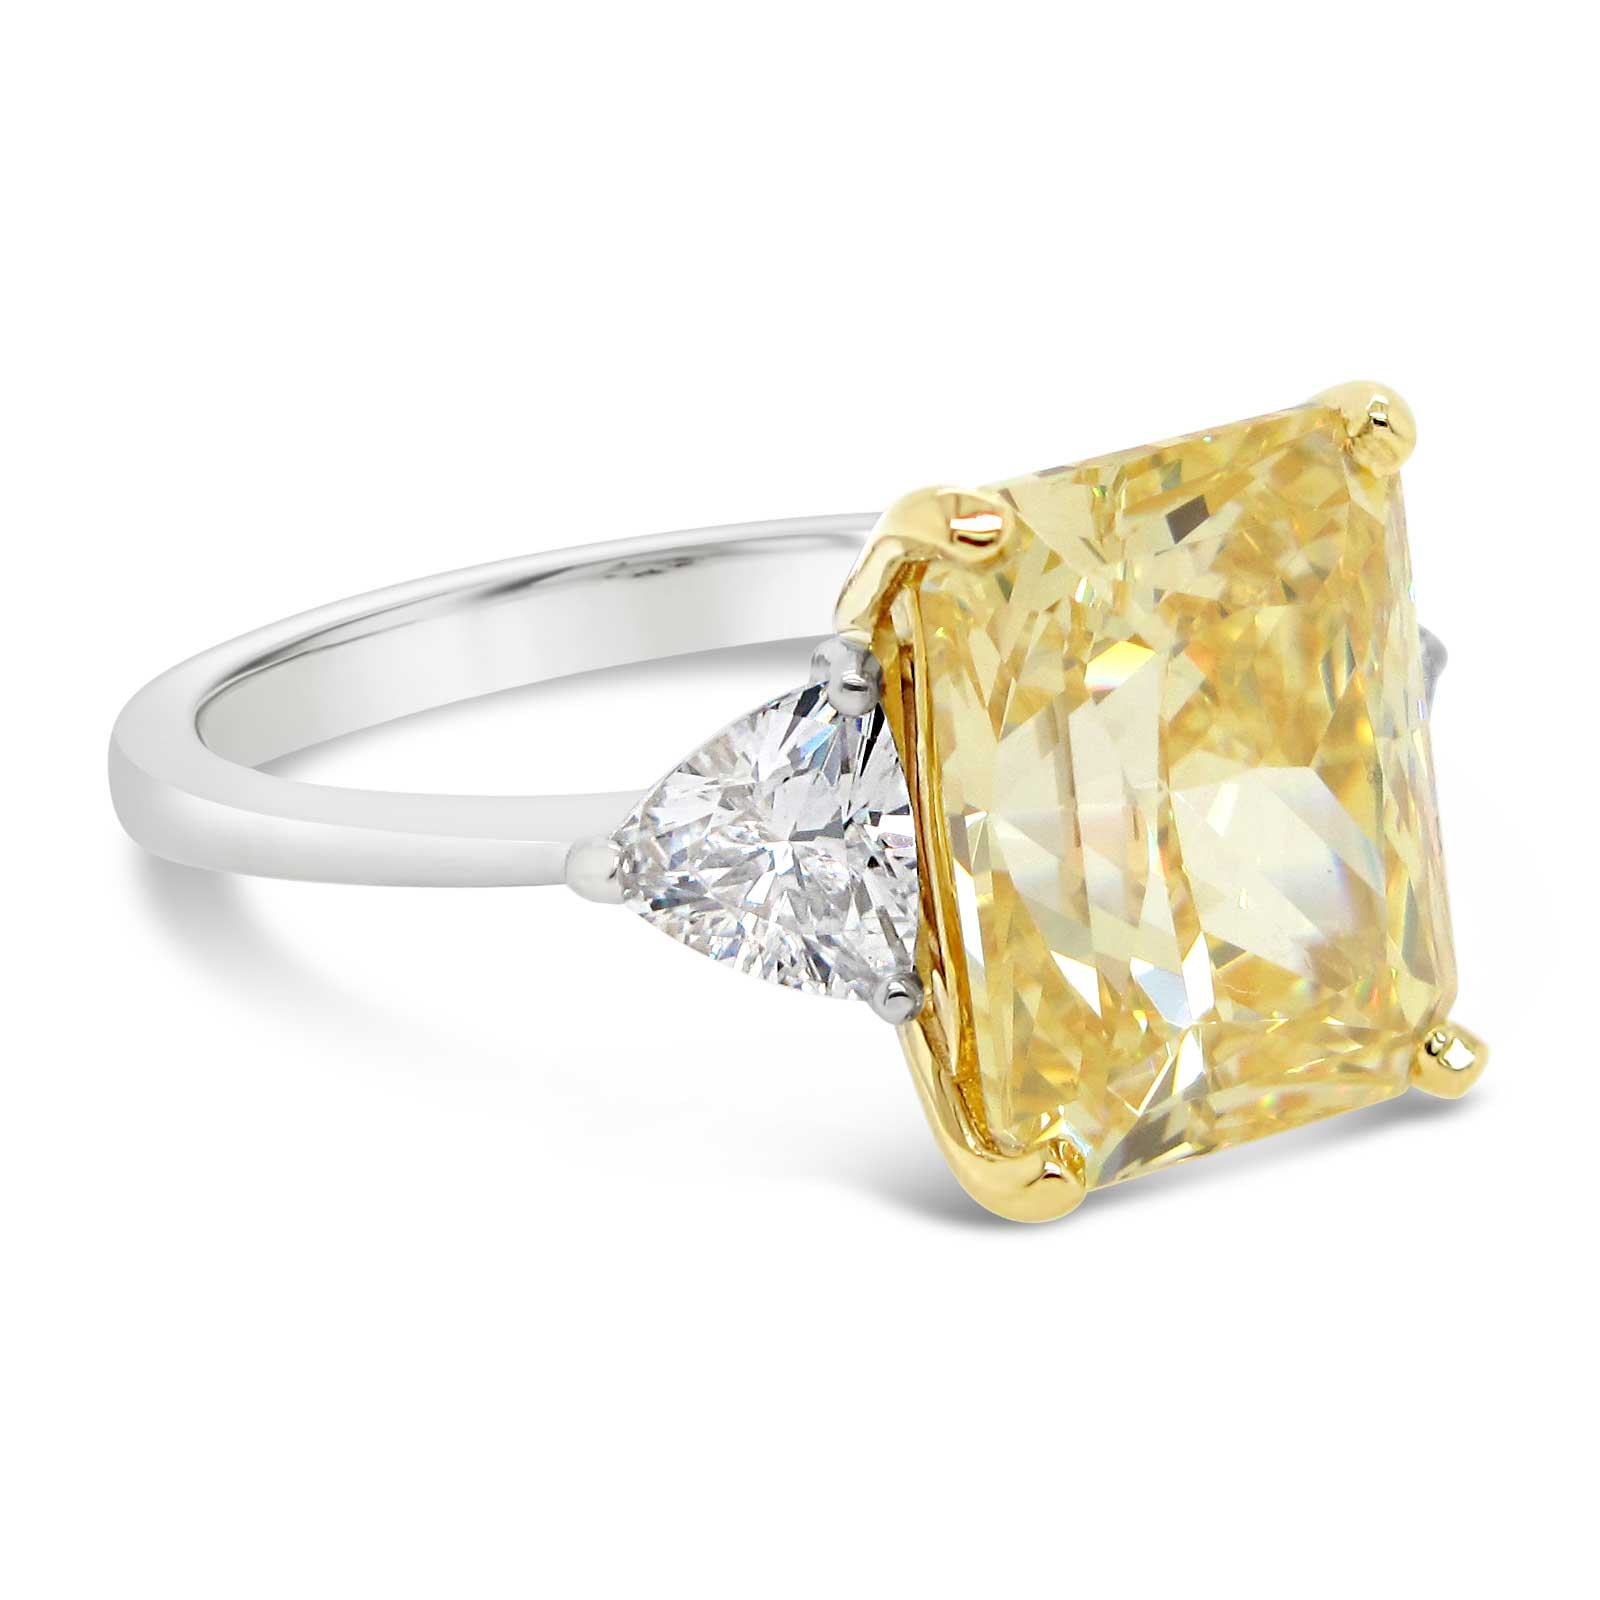 4ct Yellow Center with White Trillion Sides